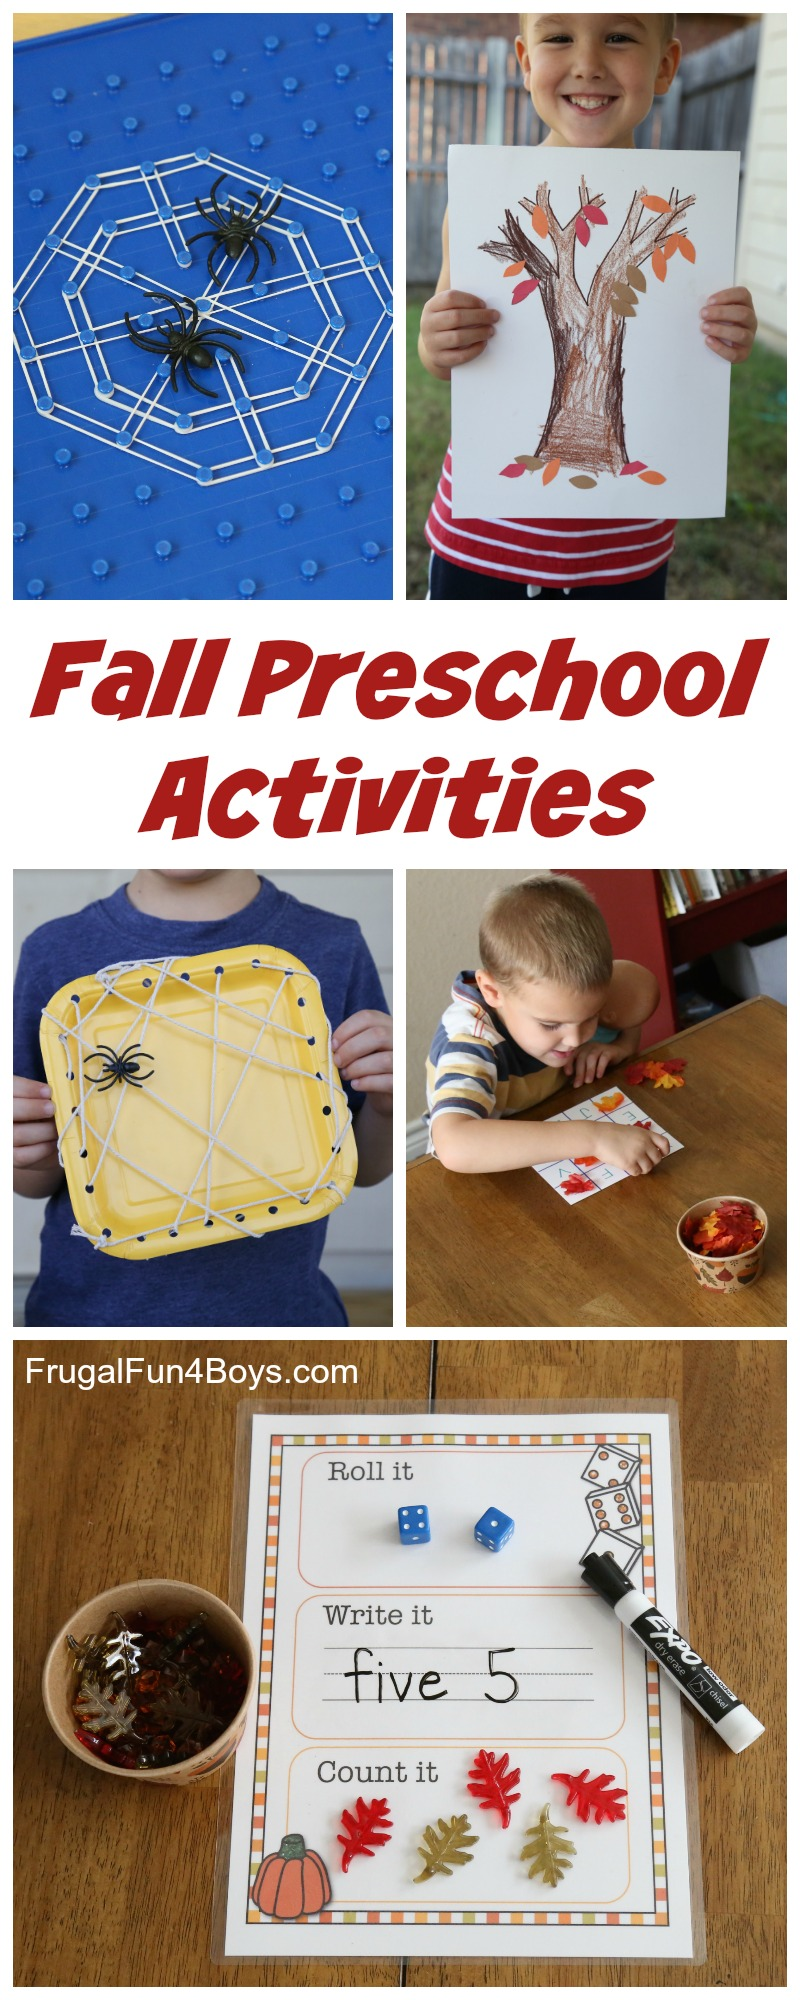 Fall Preschool Activities - Fine Motor, Counting, Letters, and More